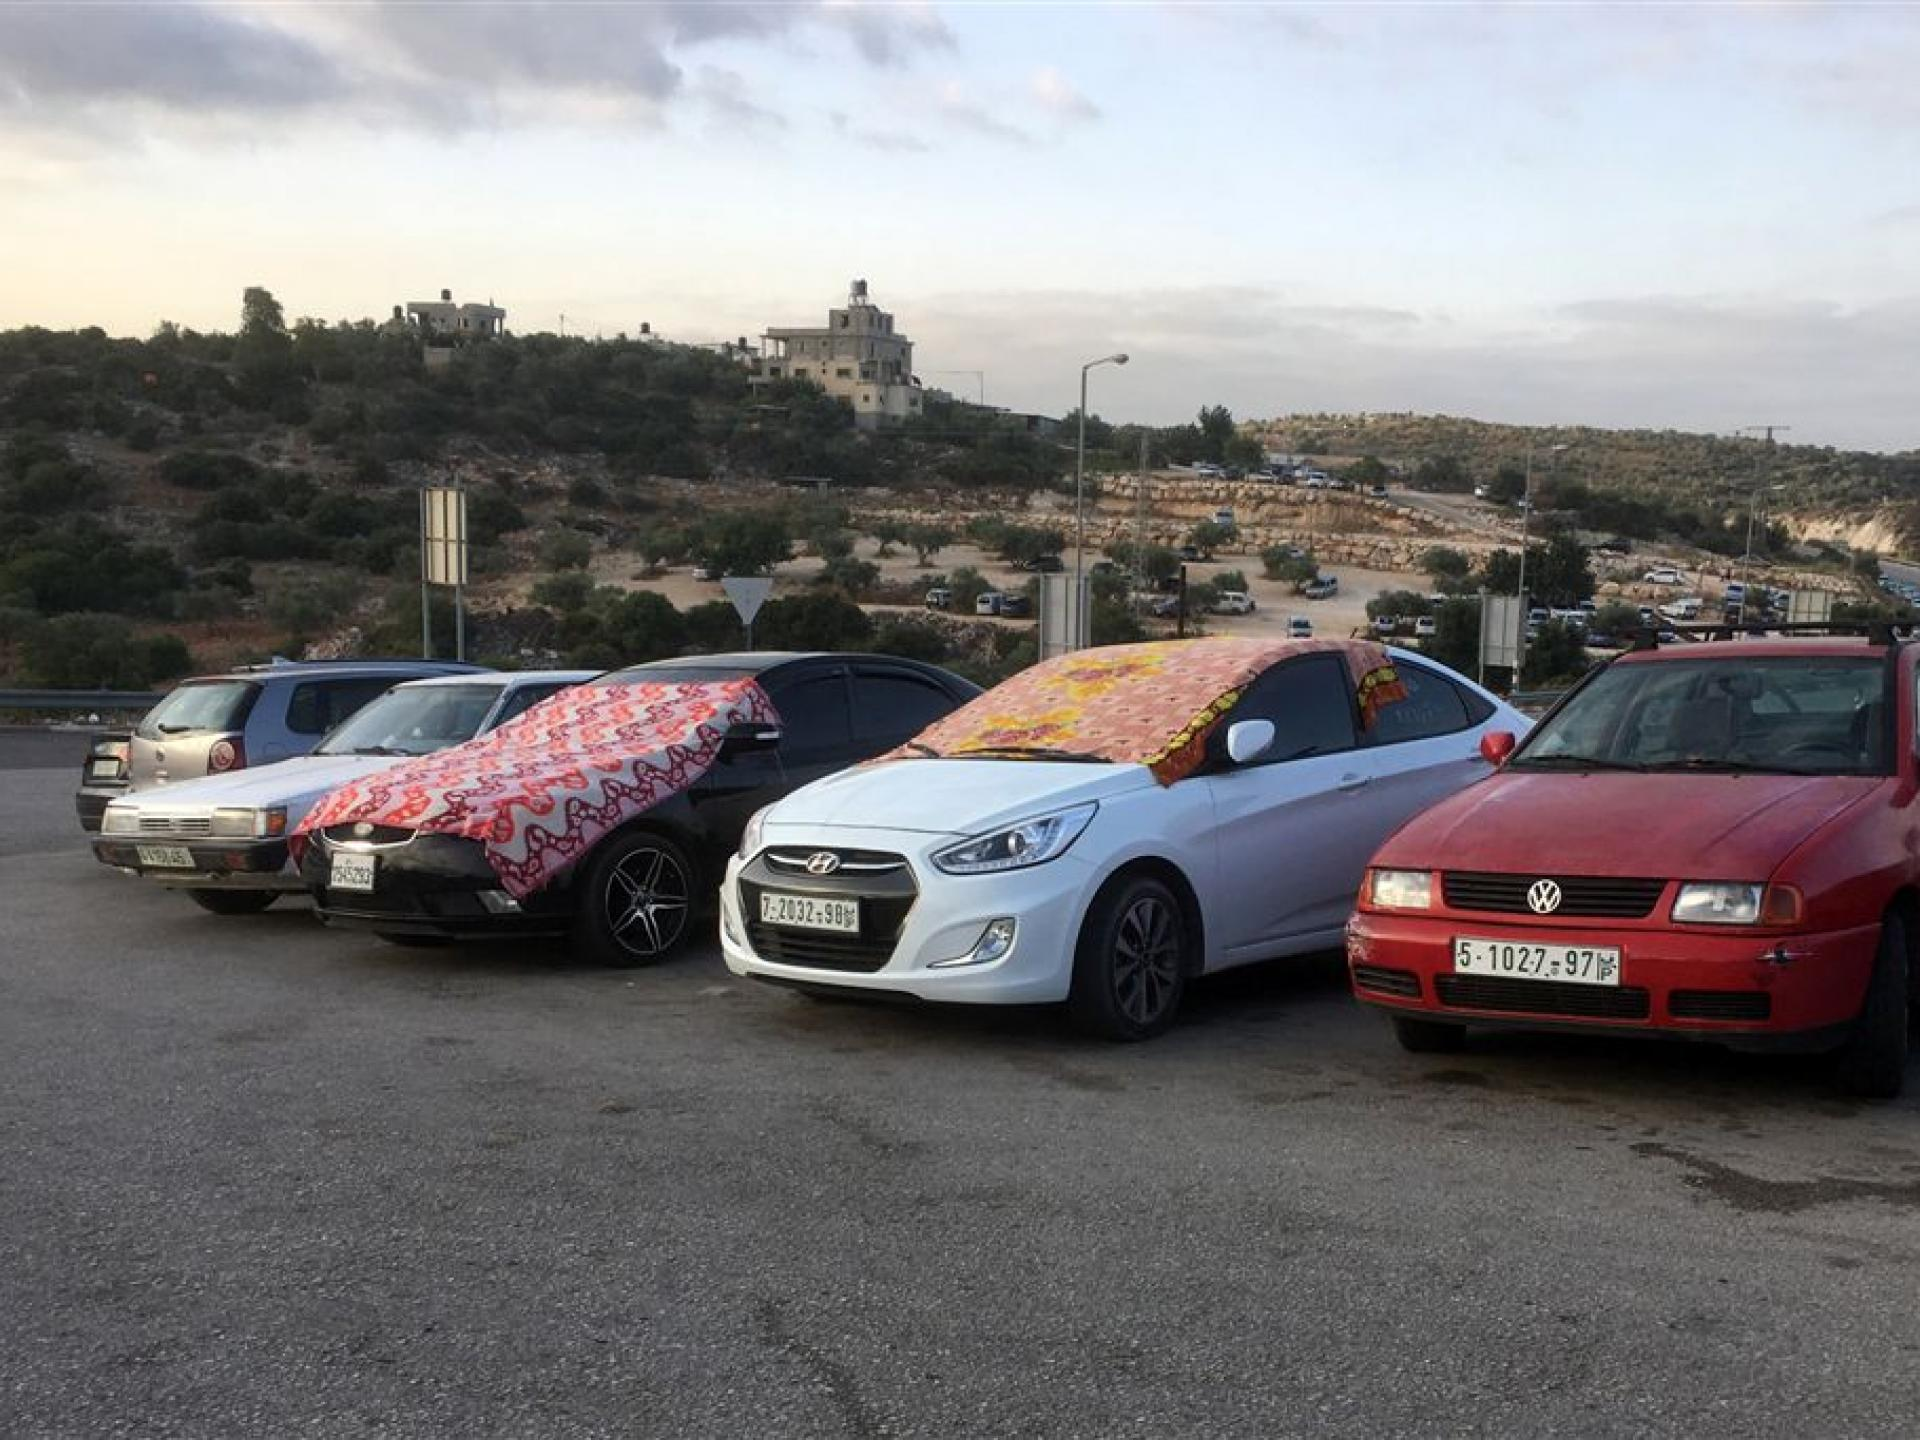 Barta'a checkpoint 3.7.2018: Pampered cars …